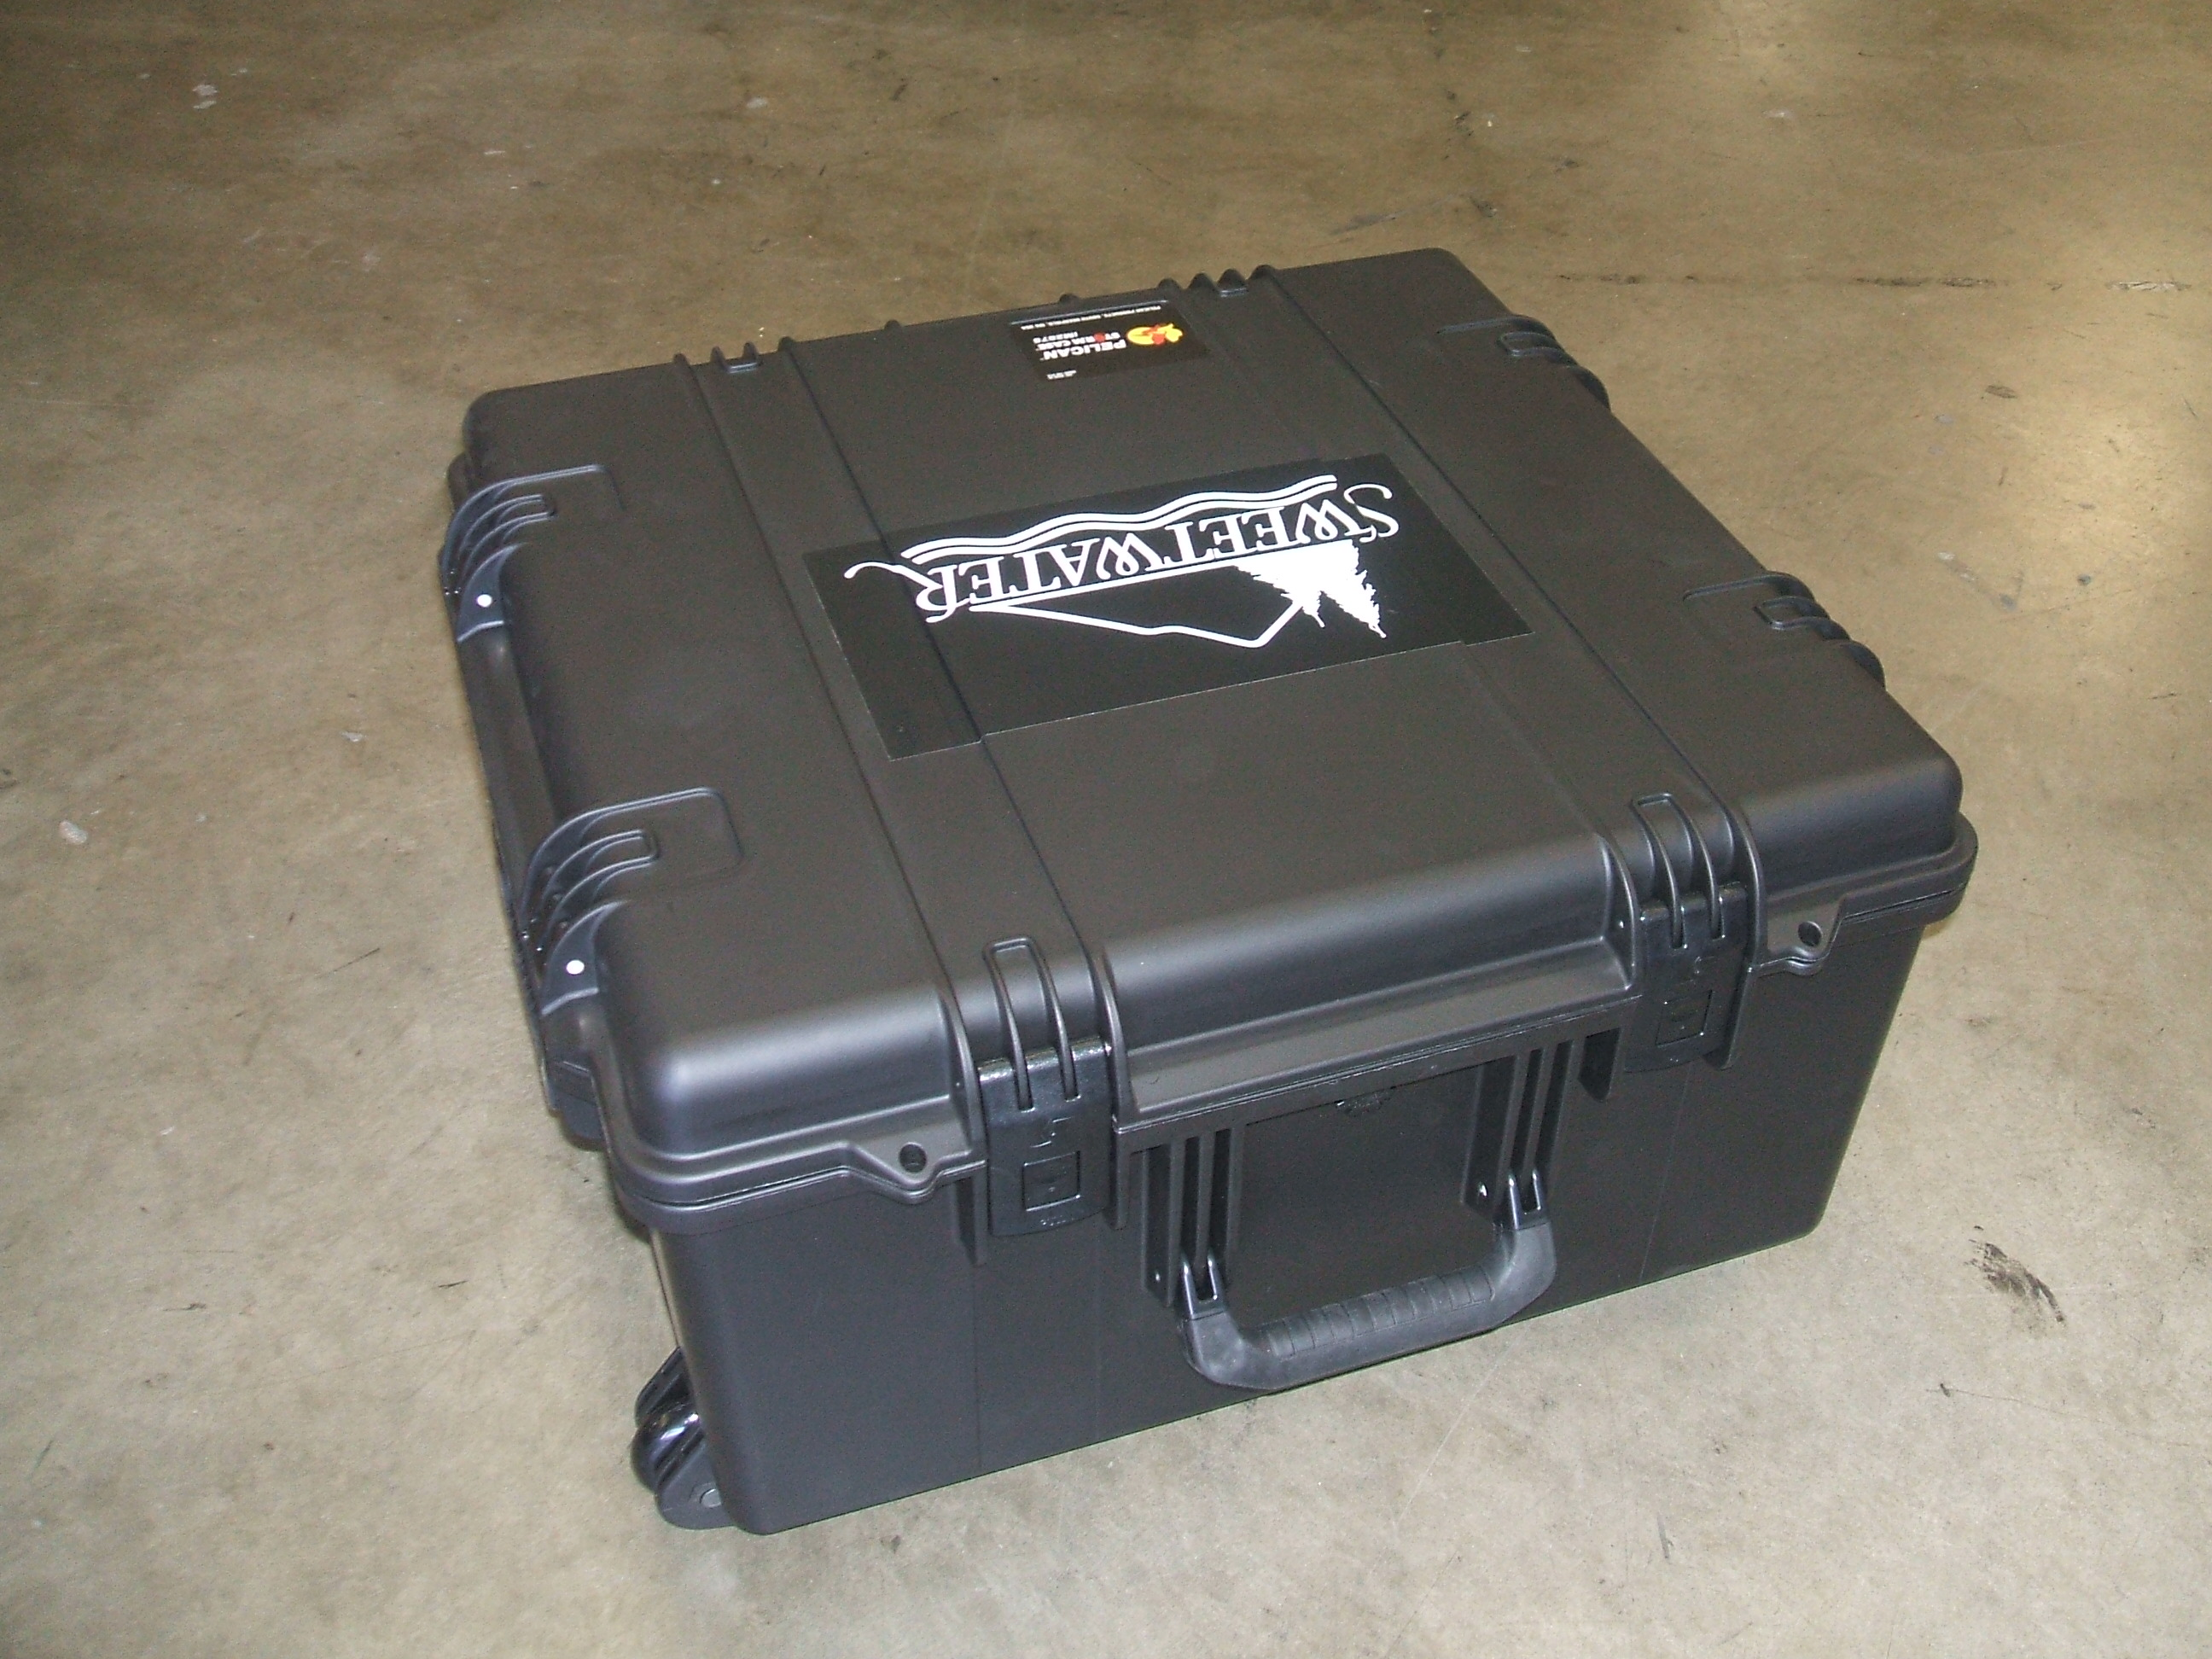 Print # 5979 - Pelican Storm Case iM2875 with Custom Foam Insert for Panasonic AV-HS410 Live Switcher By Nelson Case Corp